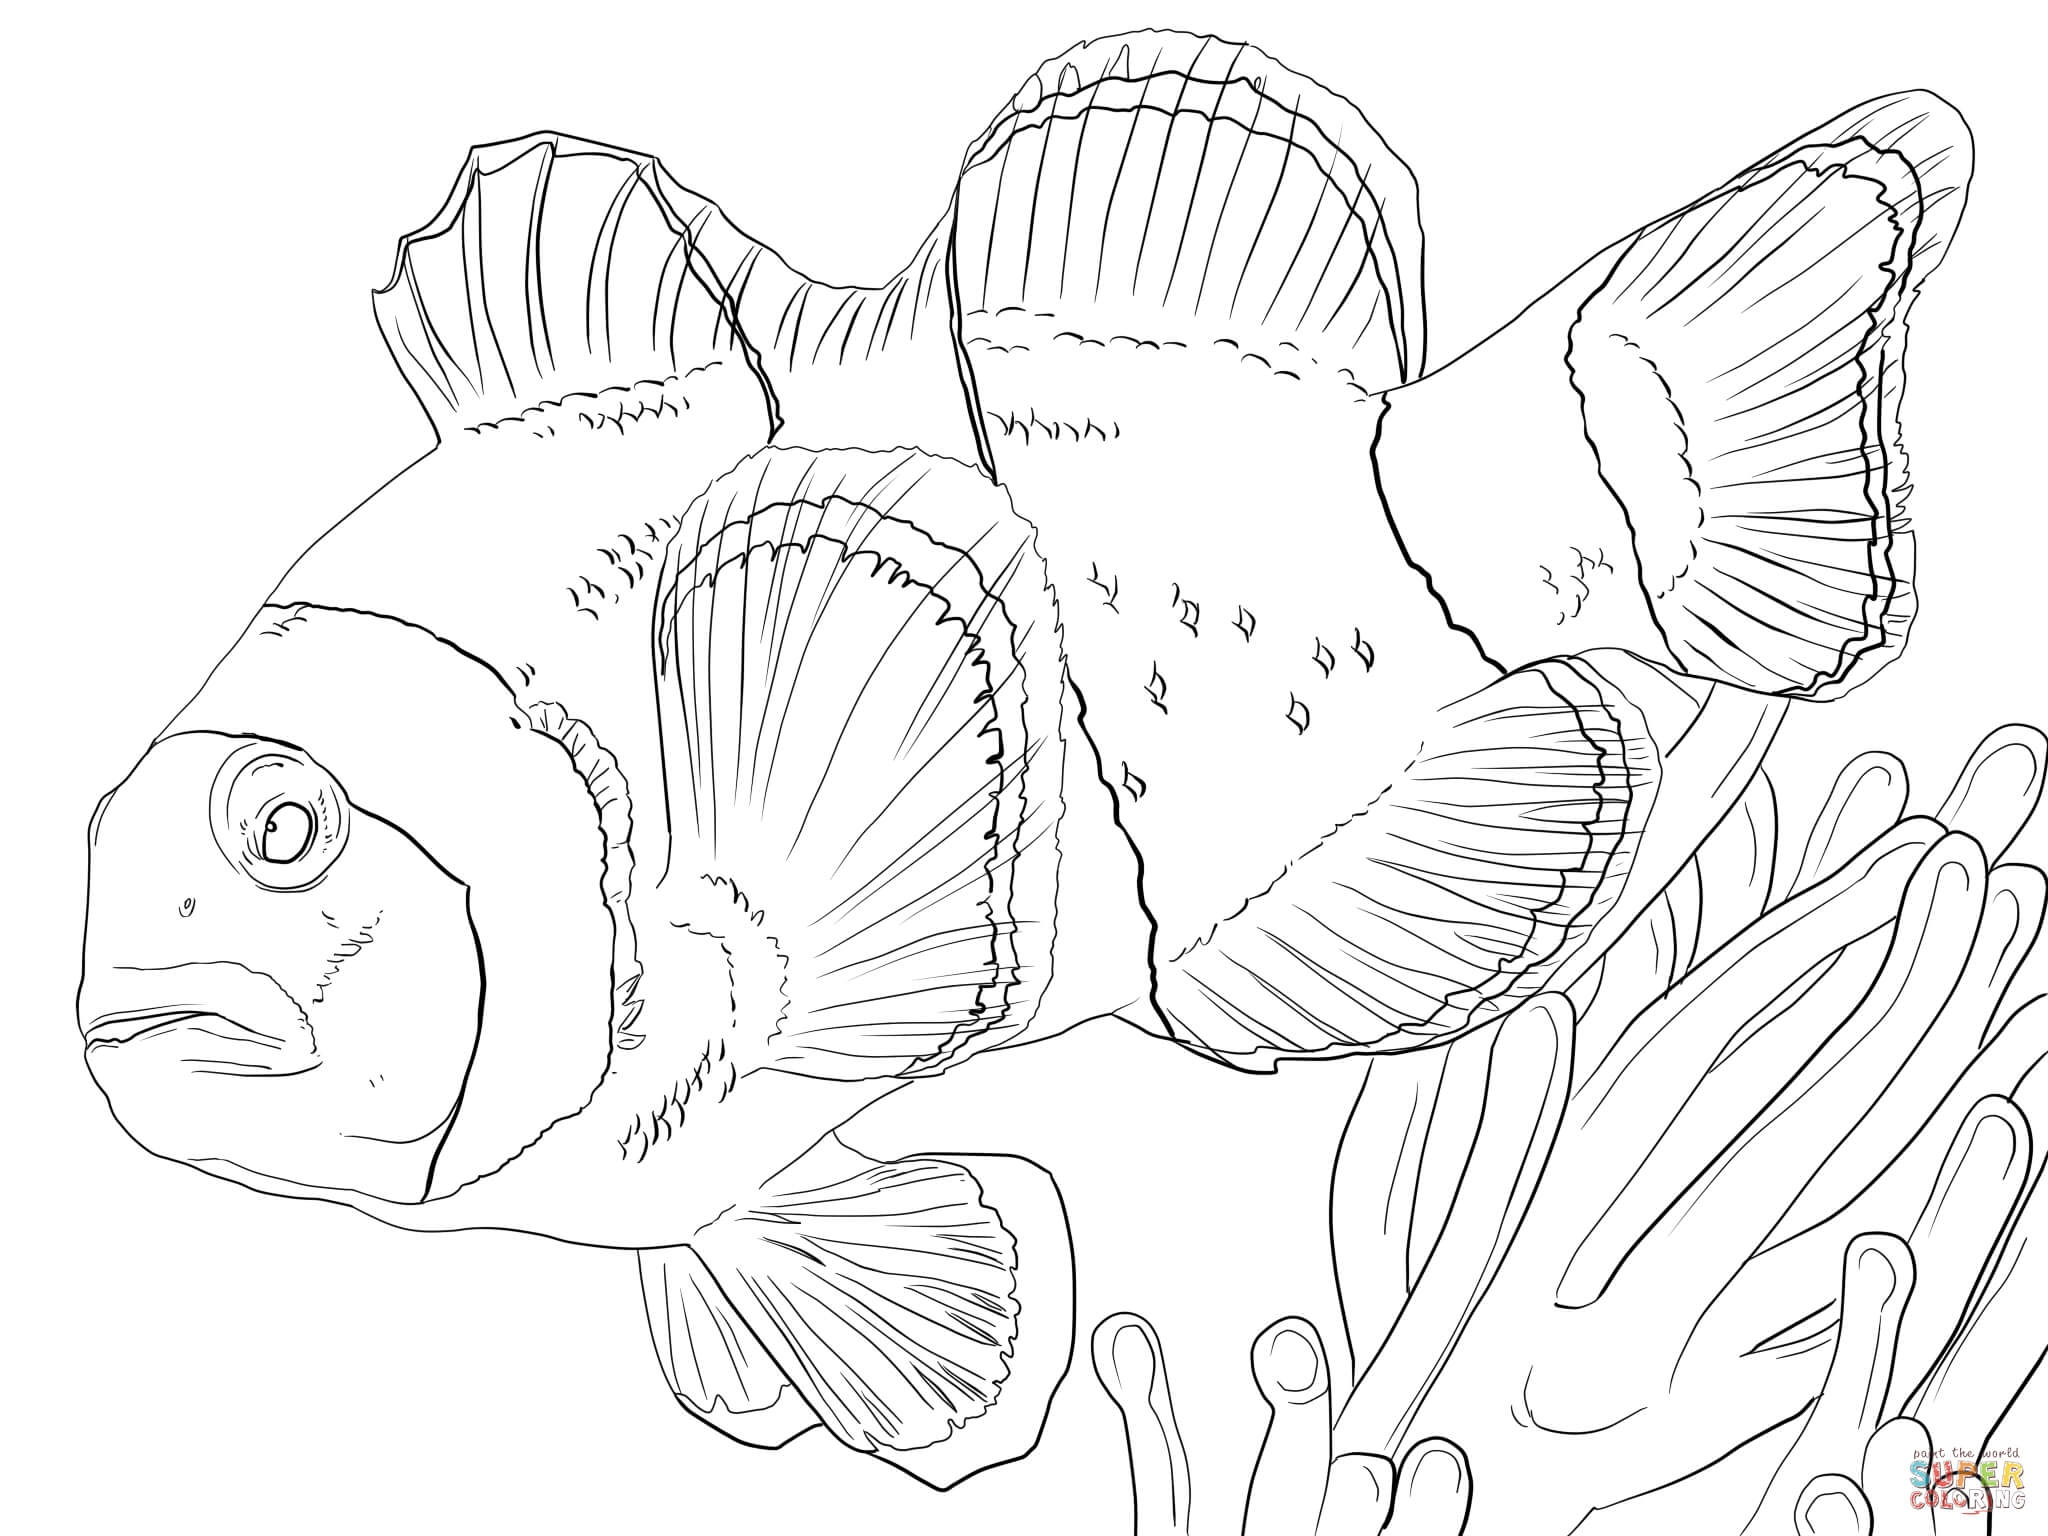 Clown Fish Coloring Page - Ausmalbild Anemonenfisch